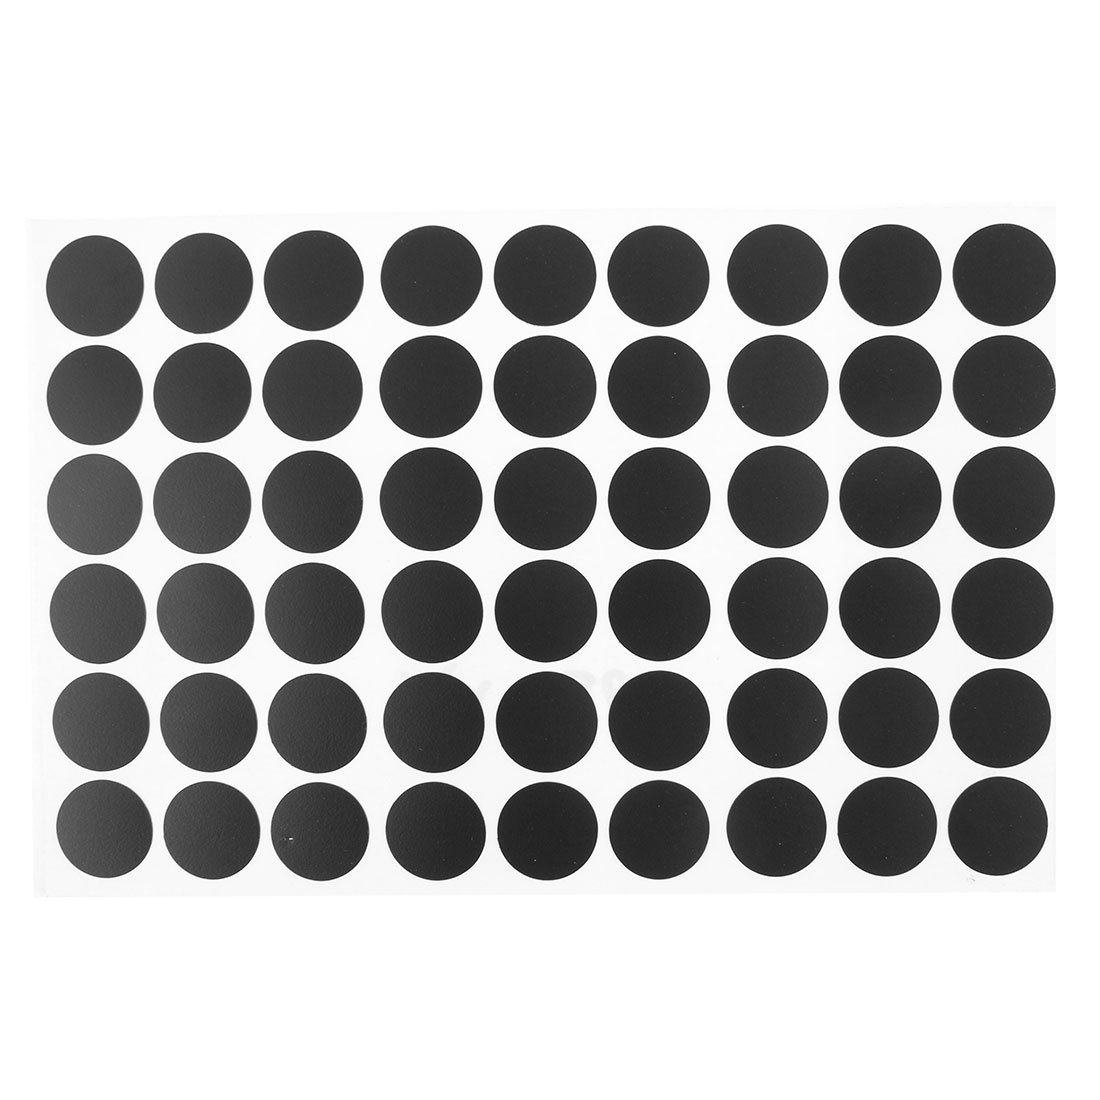 uxcell Home Table Self-Adhesive Screw Hole Covers Caps Stickers 54 in 1 Black a15112300ux1154